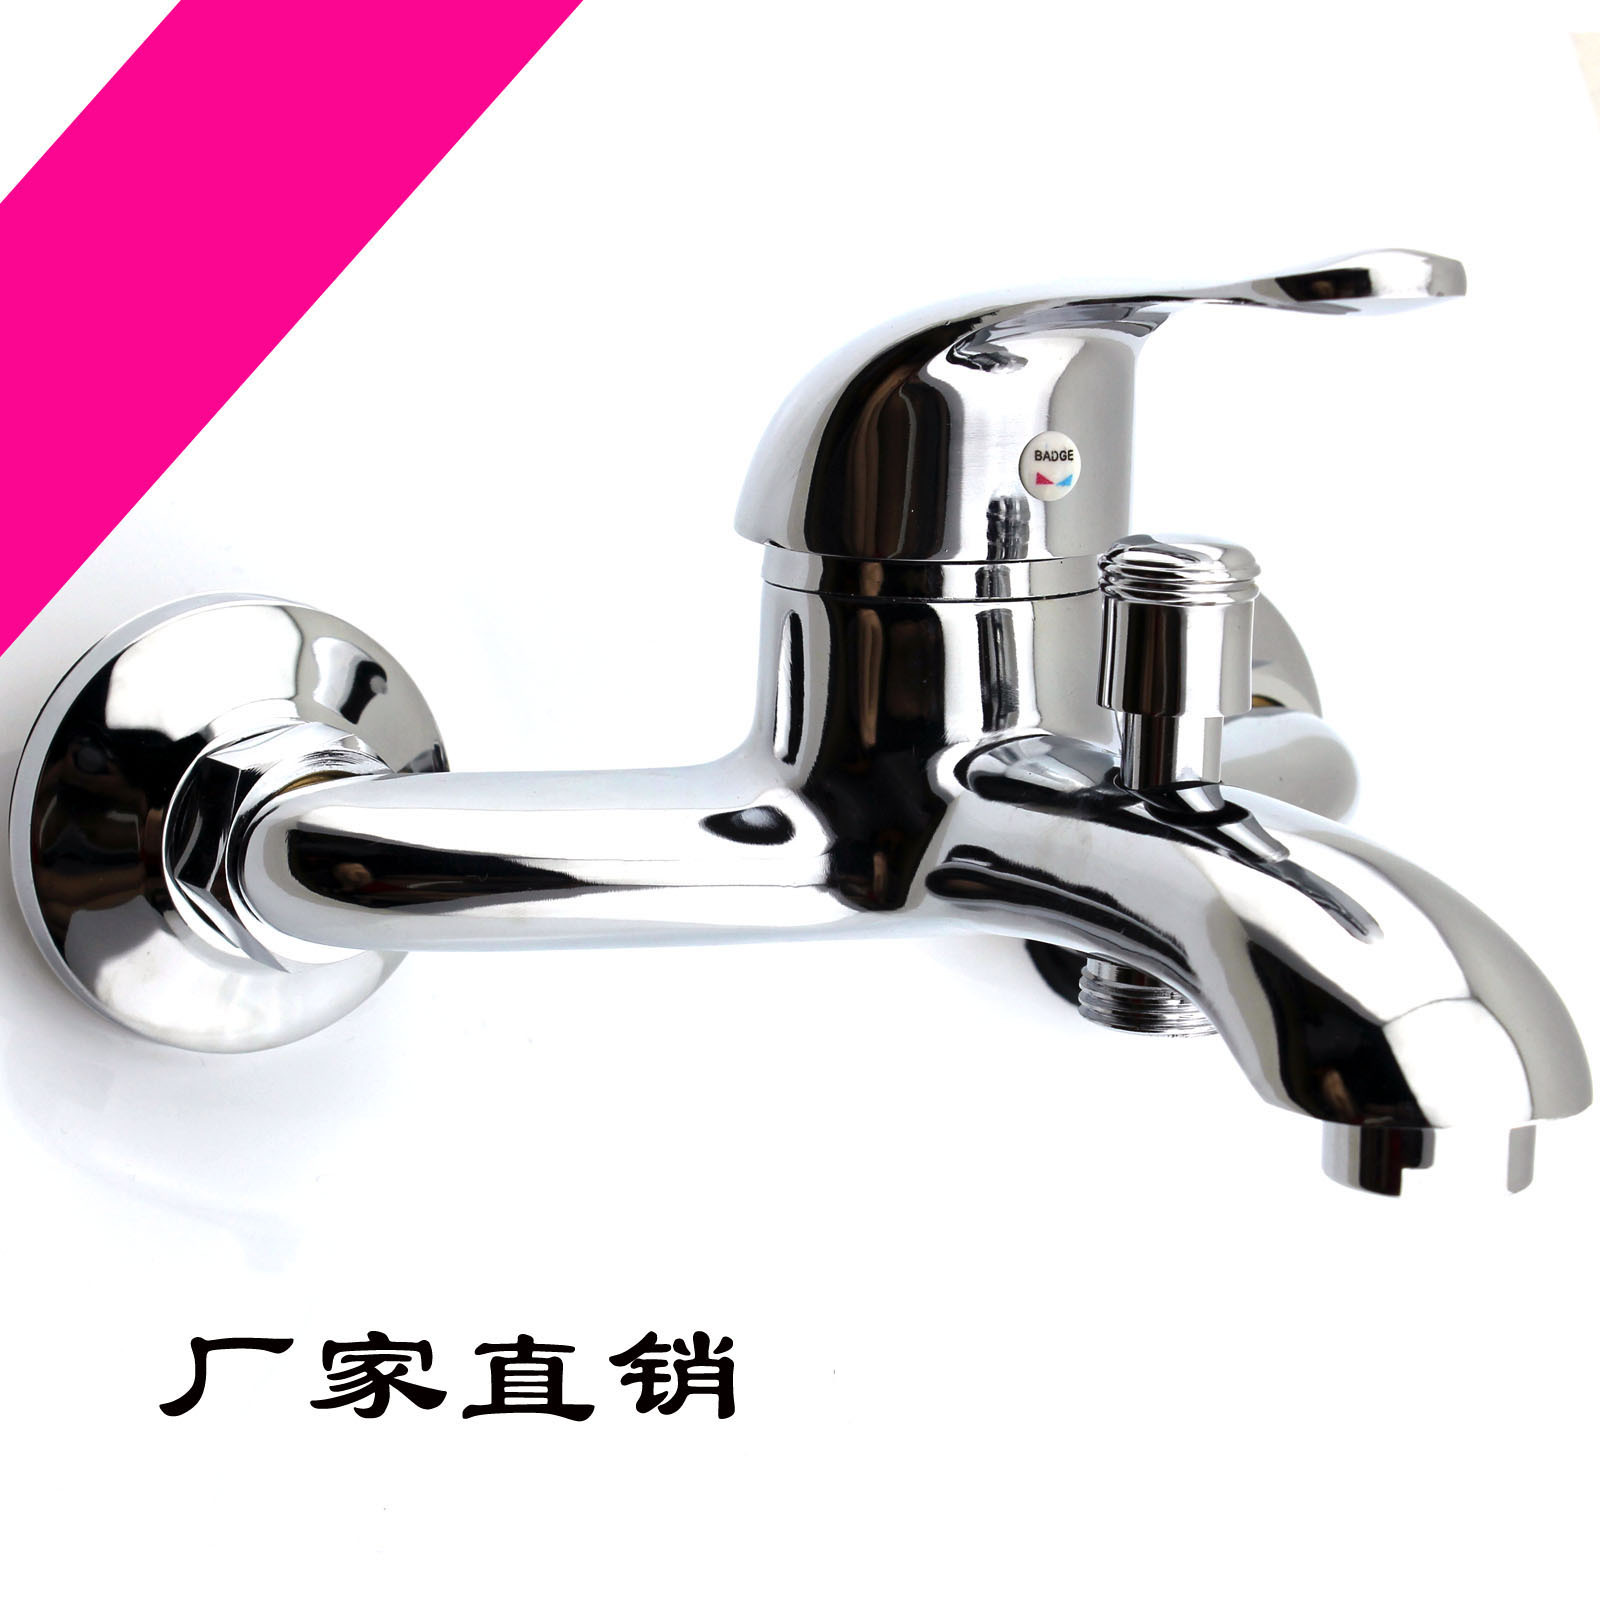 Bathroom faucet cold and hot bath tub ming mounted shower hot and cold shower faucet(China (Mainland))